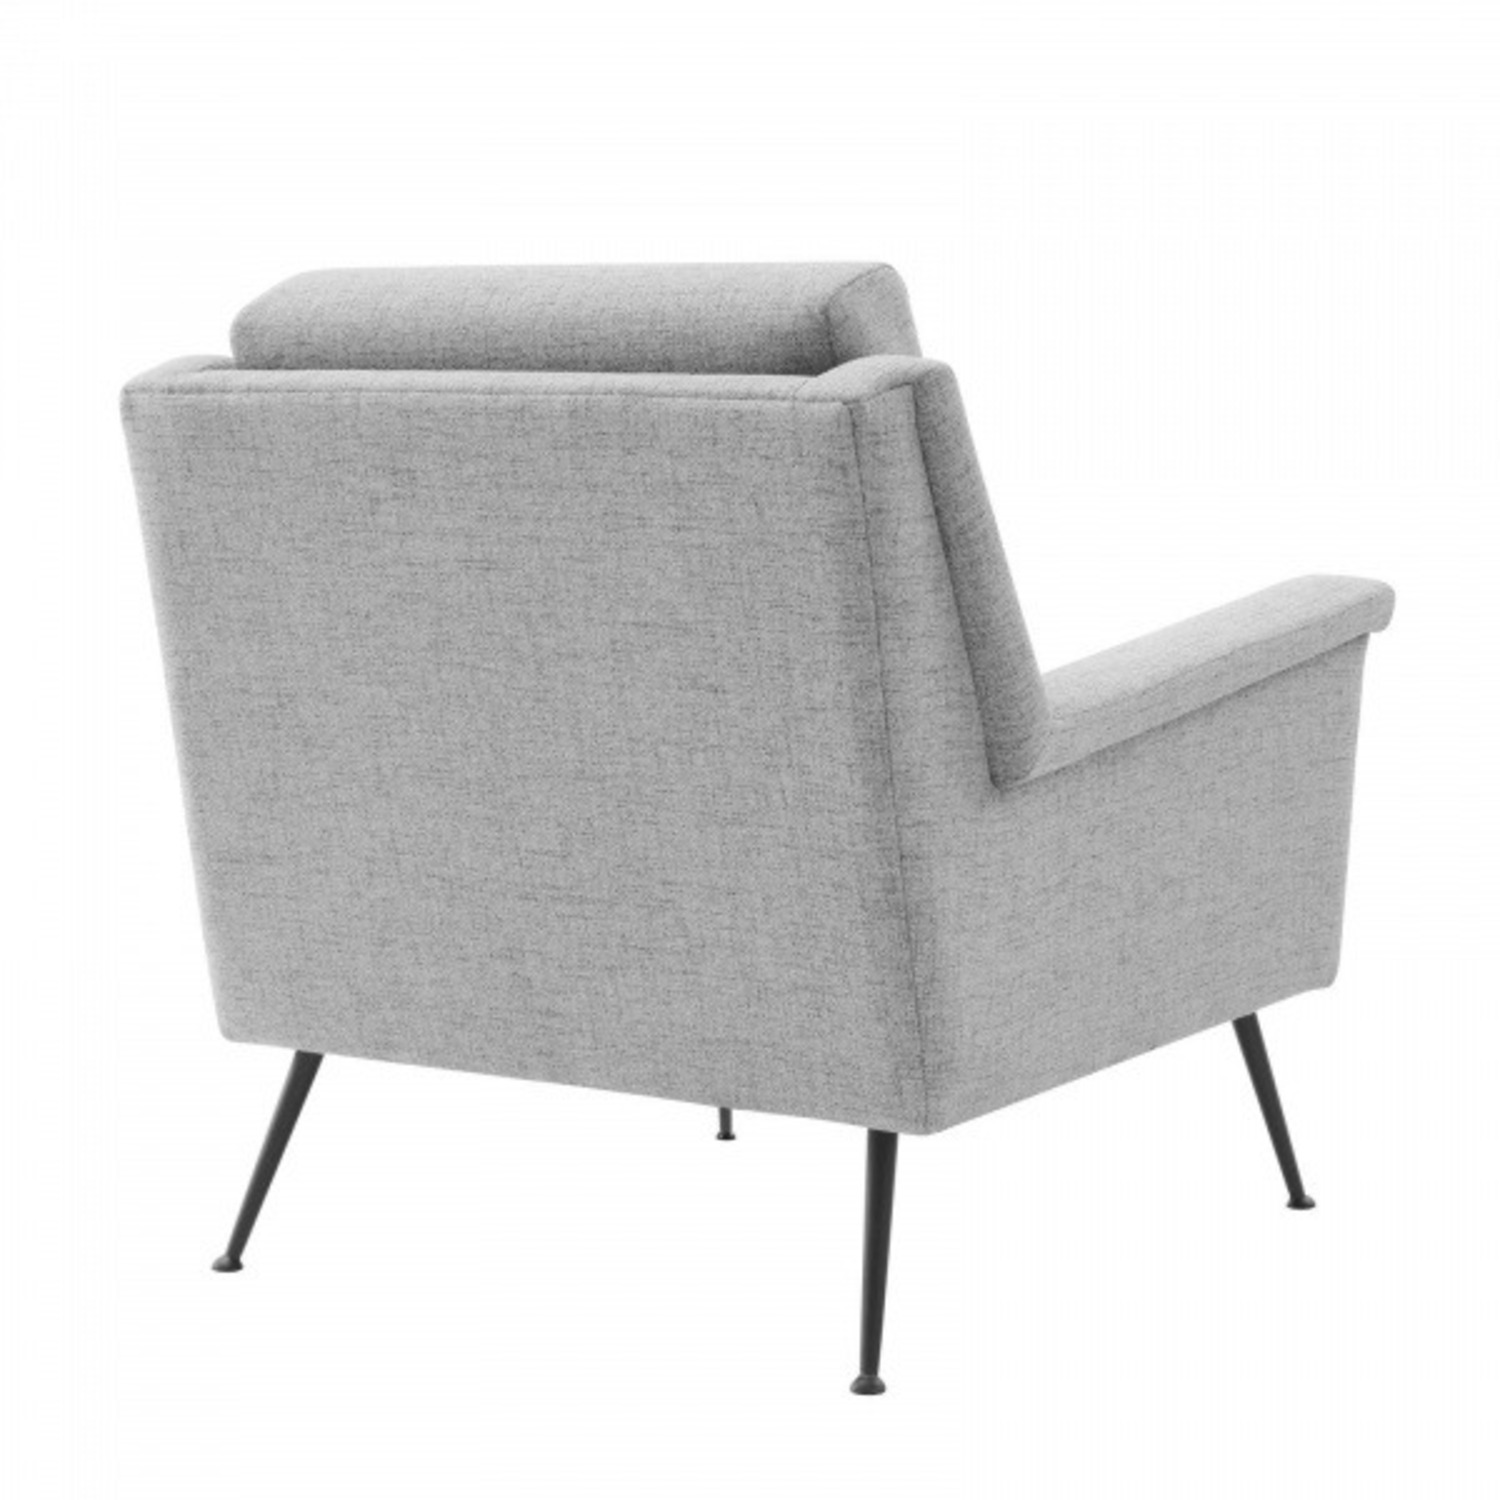 Modern Accent Armchair In Light Gray Fabric - image-2